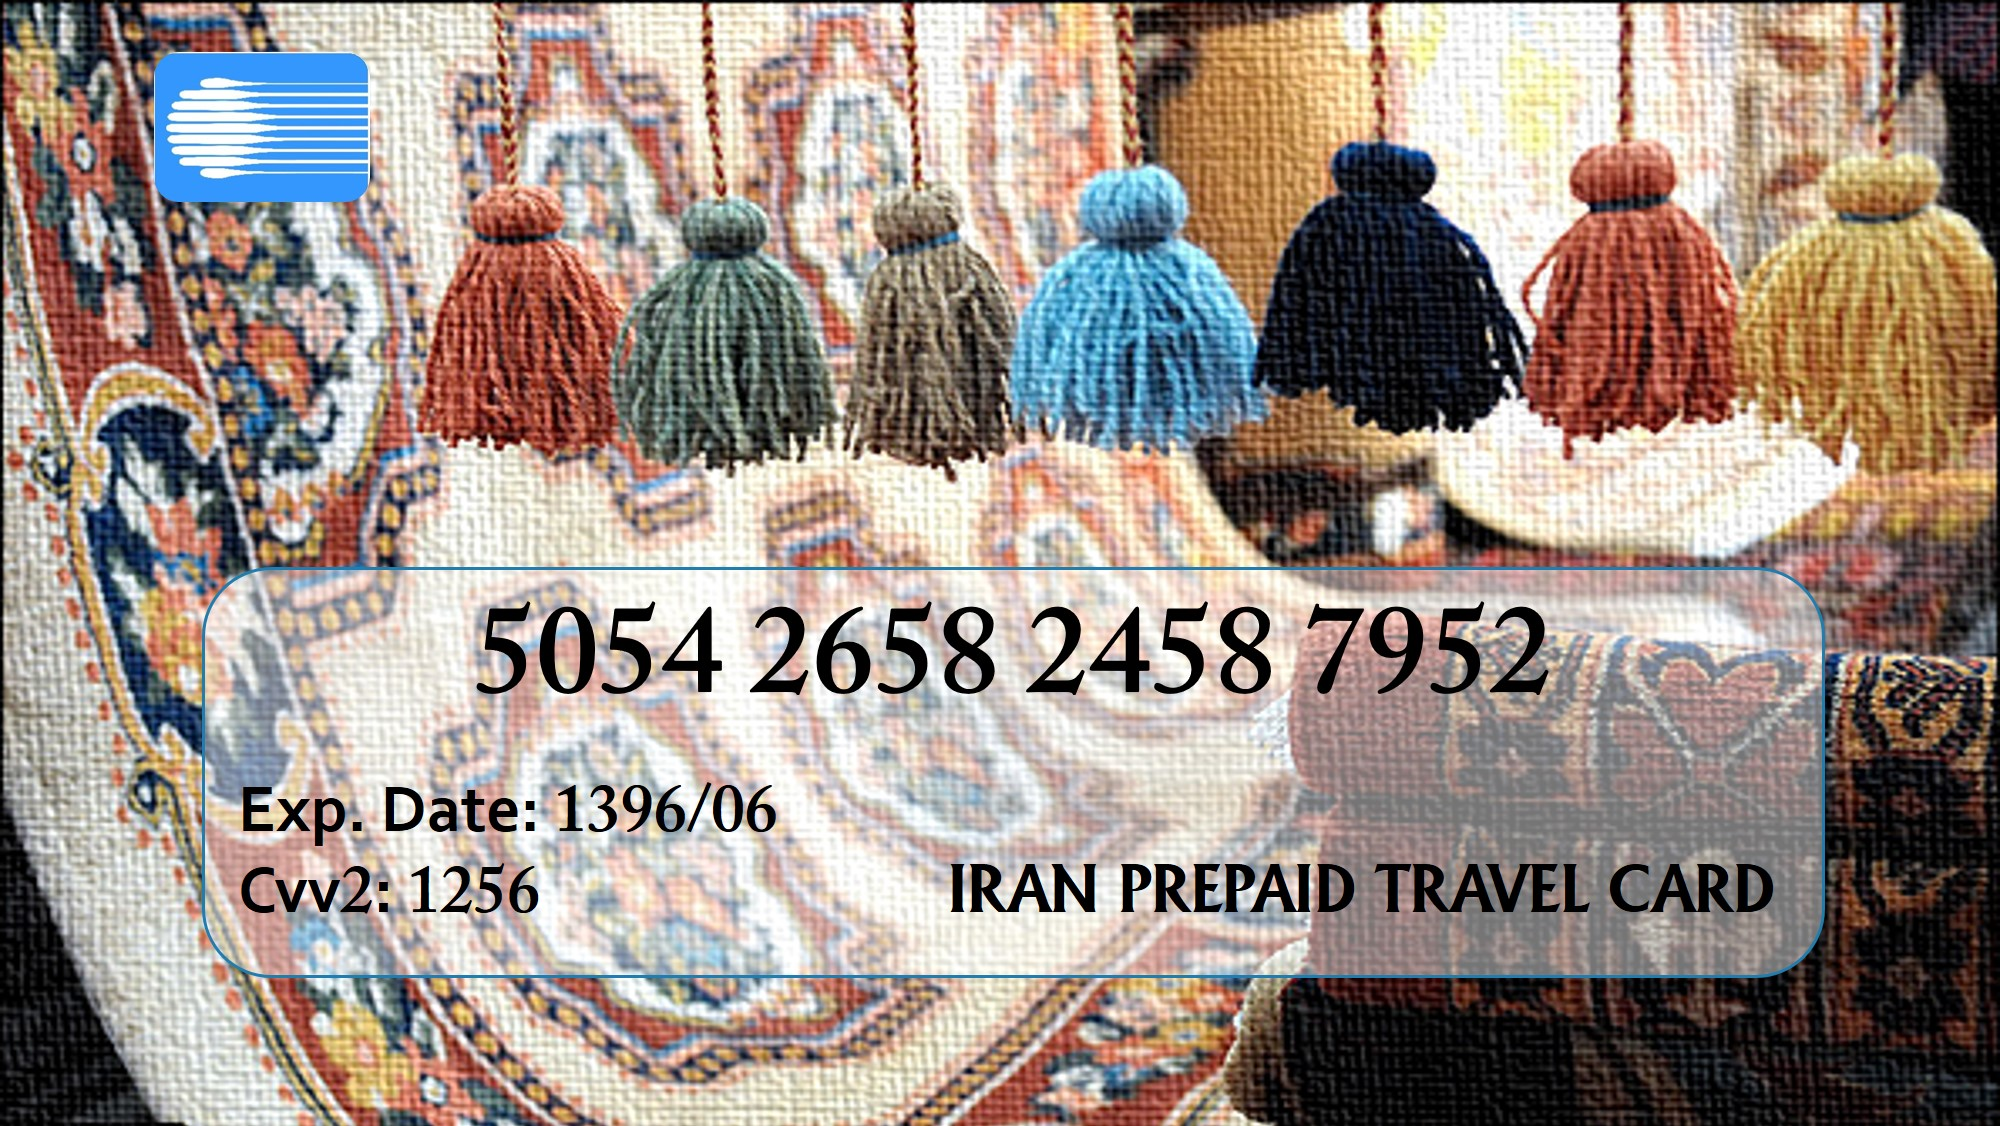 Conveniently shop and travel around Iran with a prepaid card.